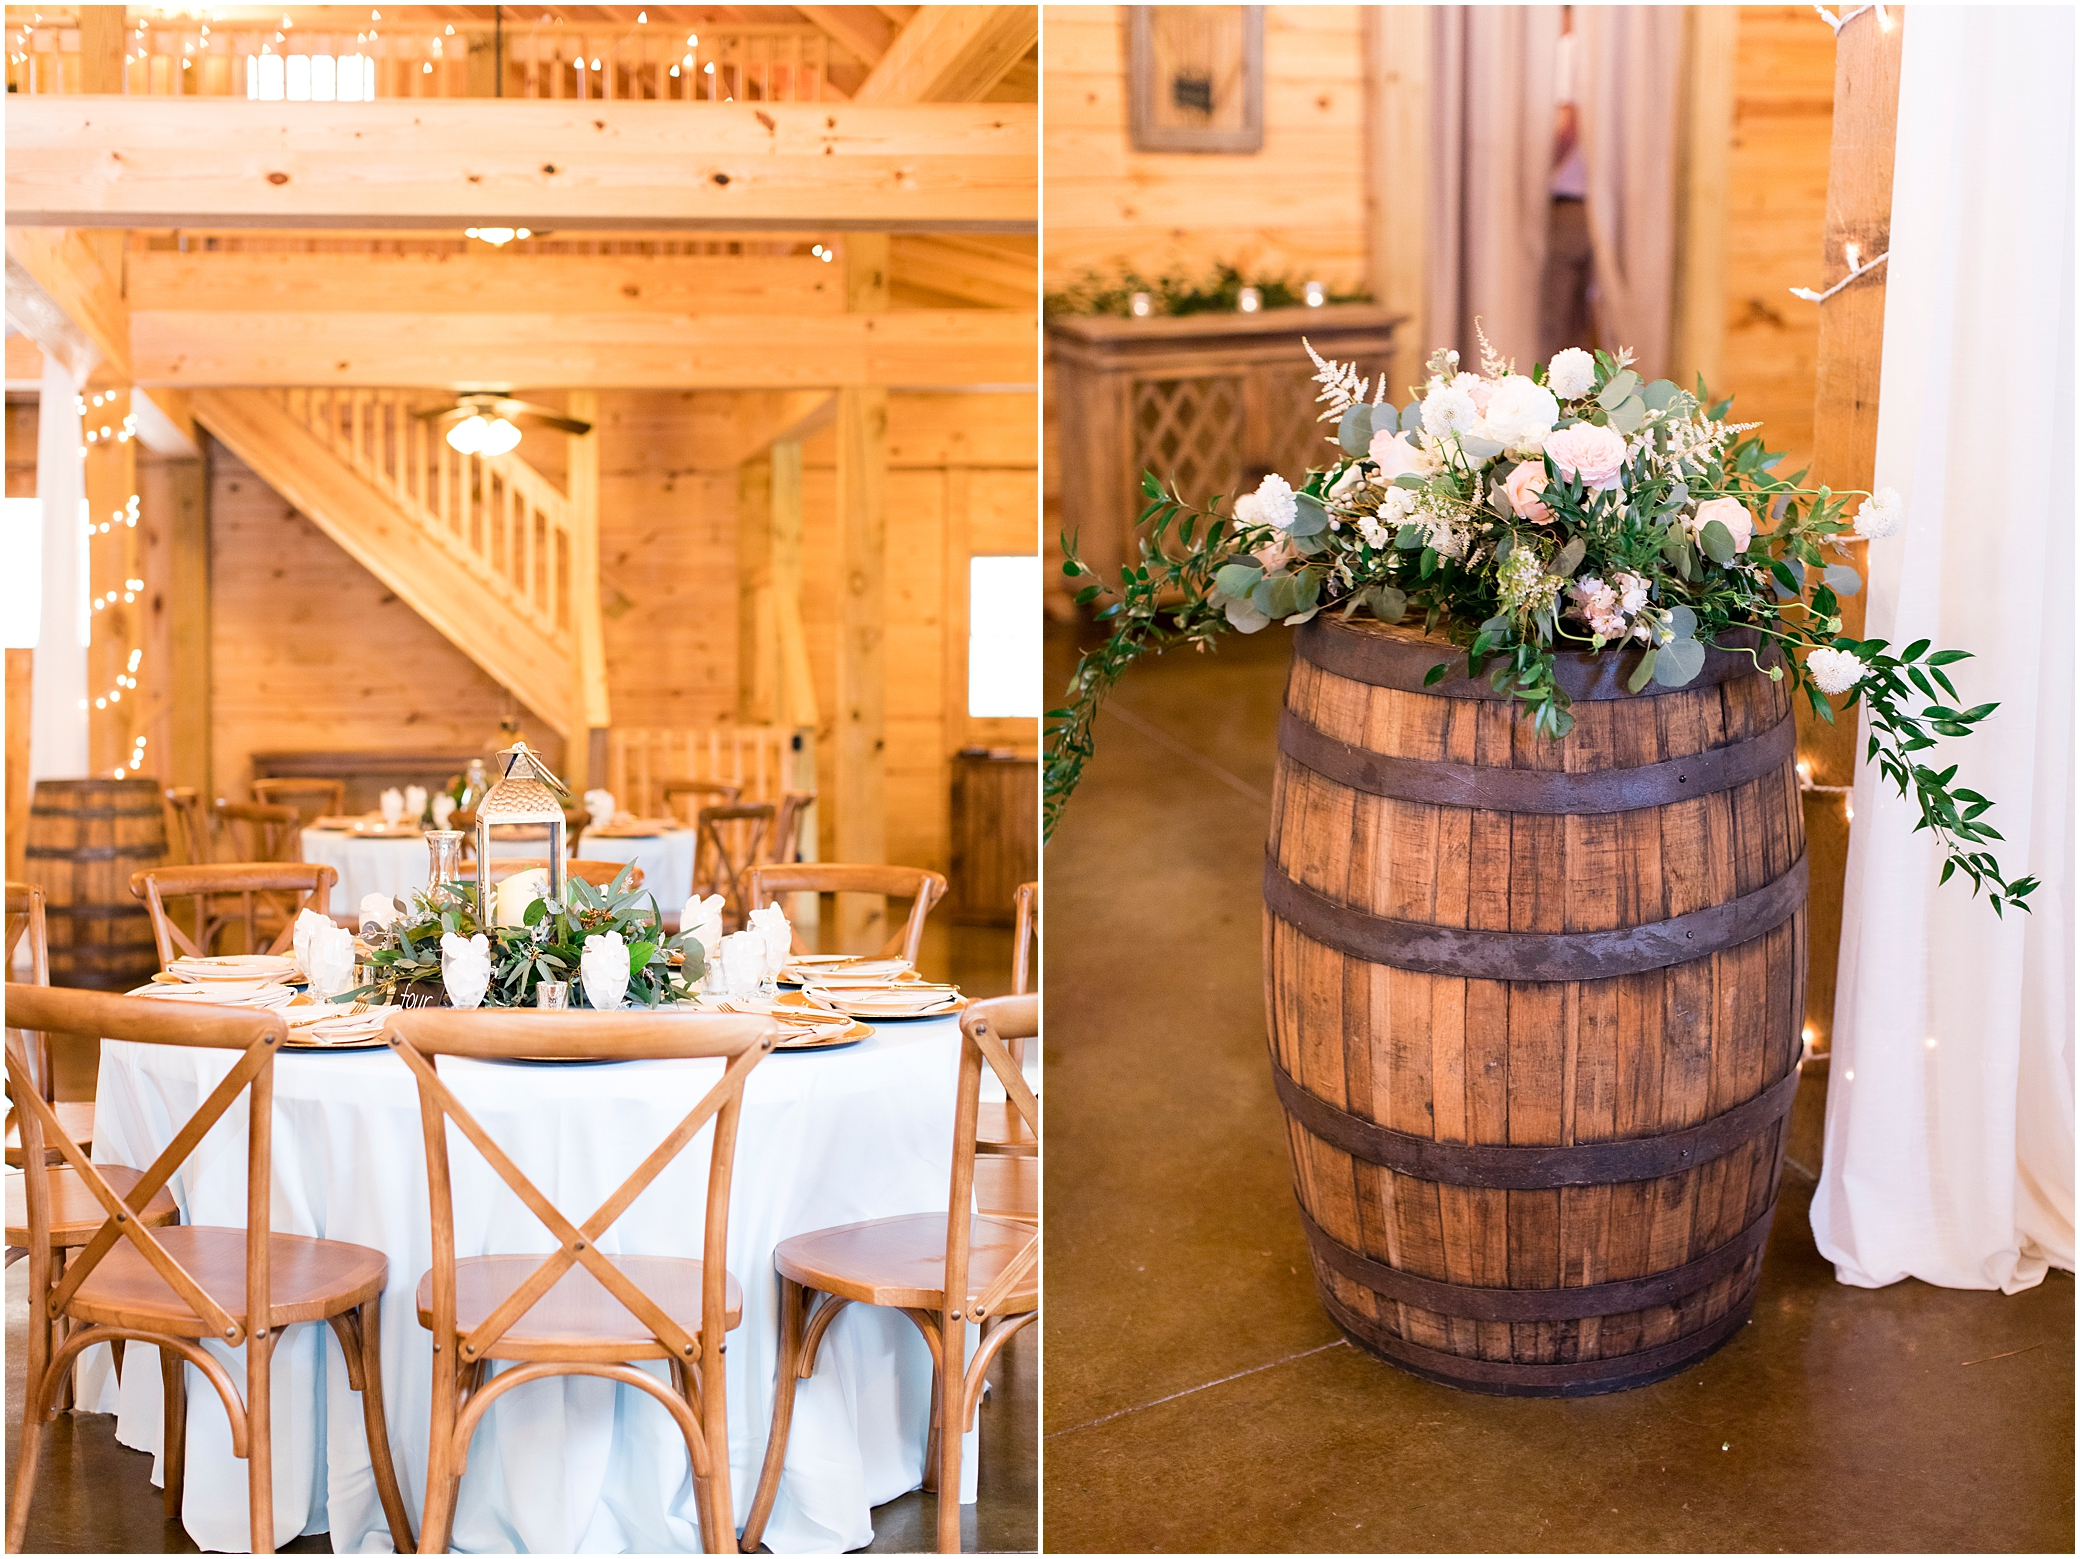 wedding reception decor at sierra vista wedding, bloom by doyle's, a little party events